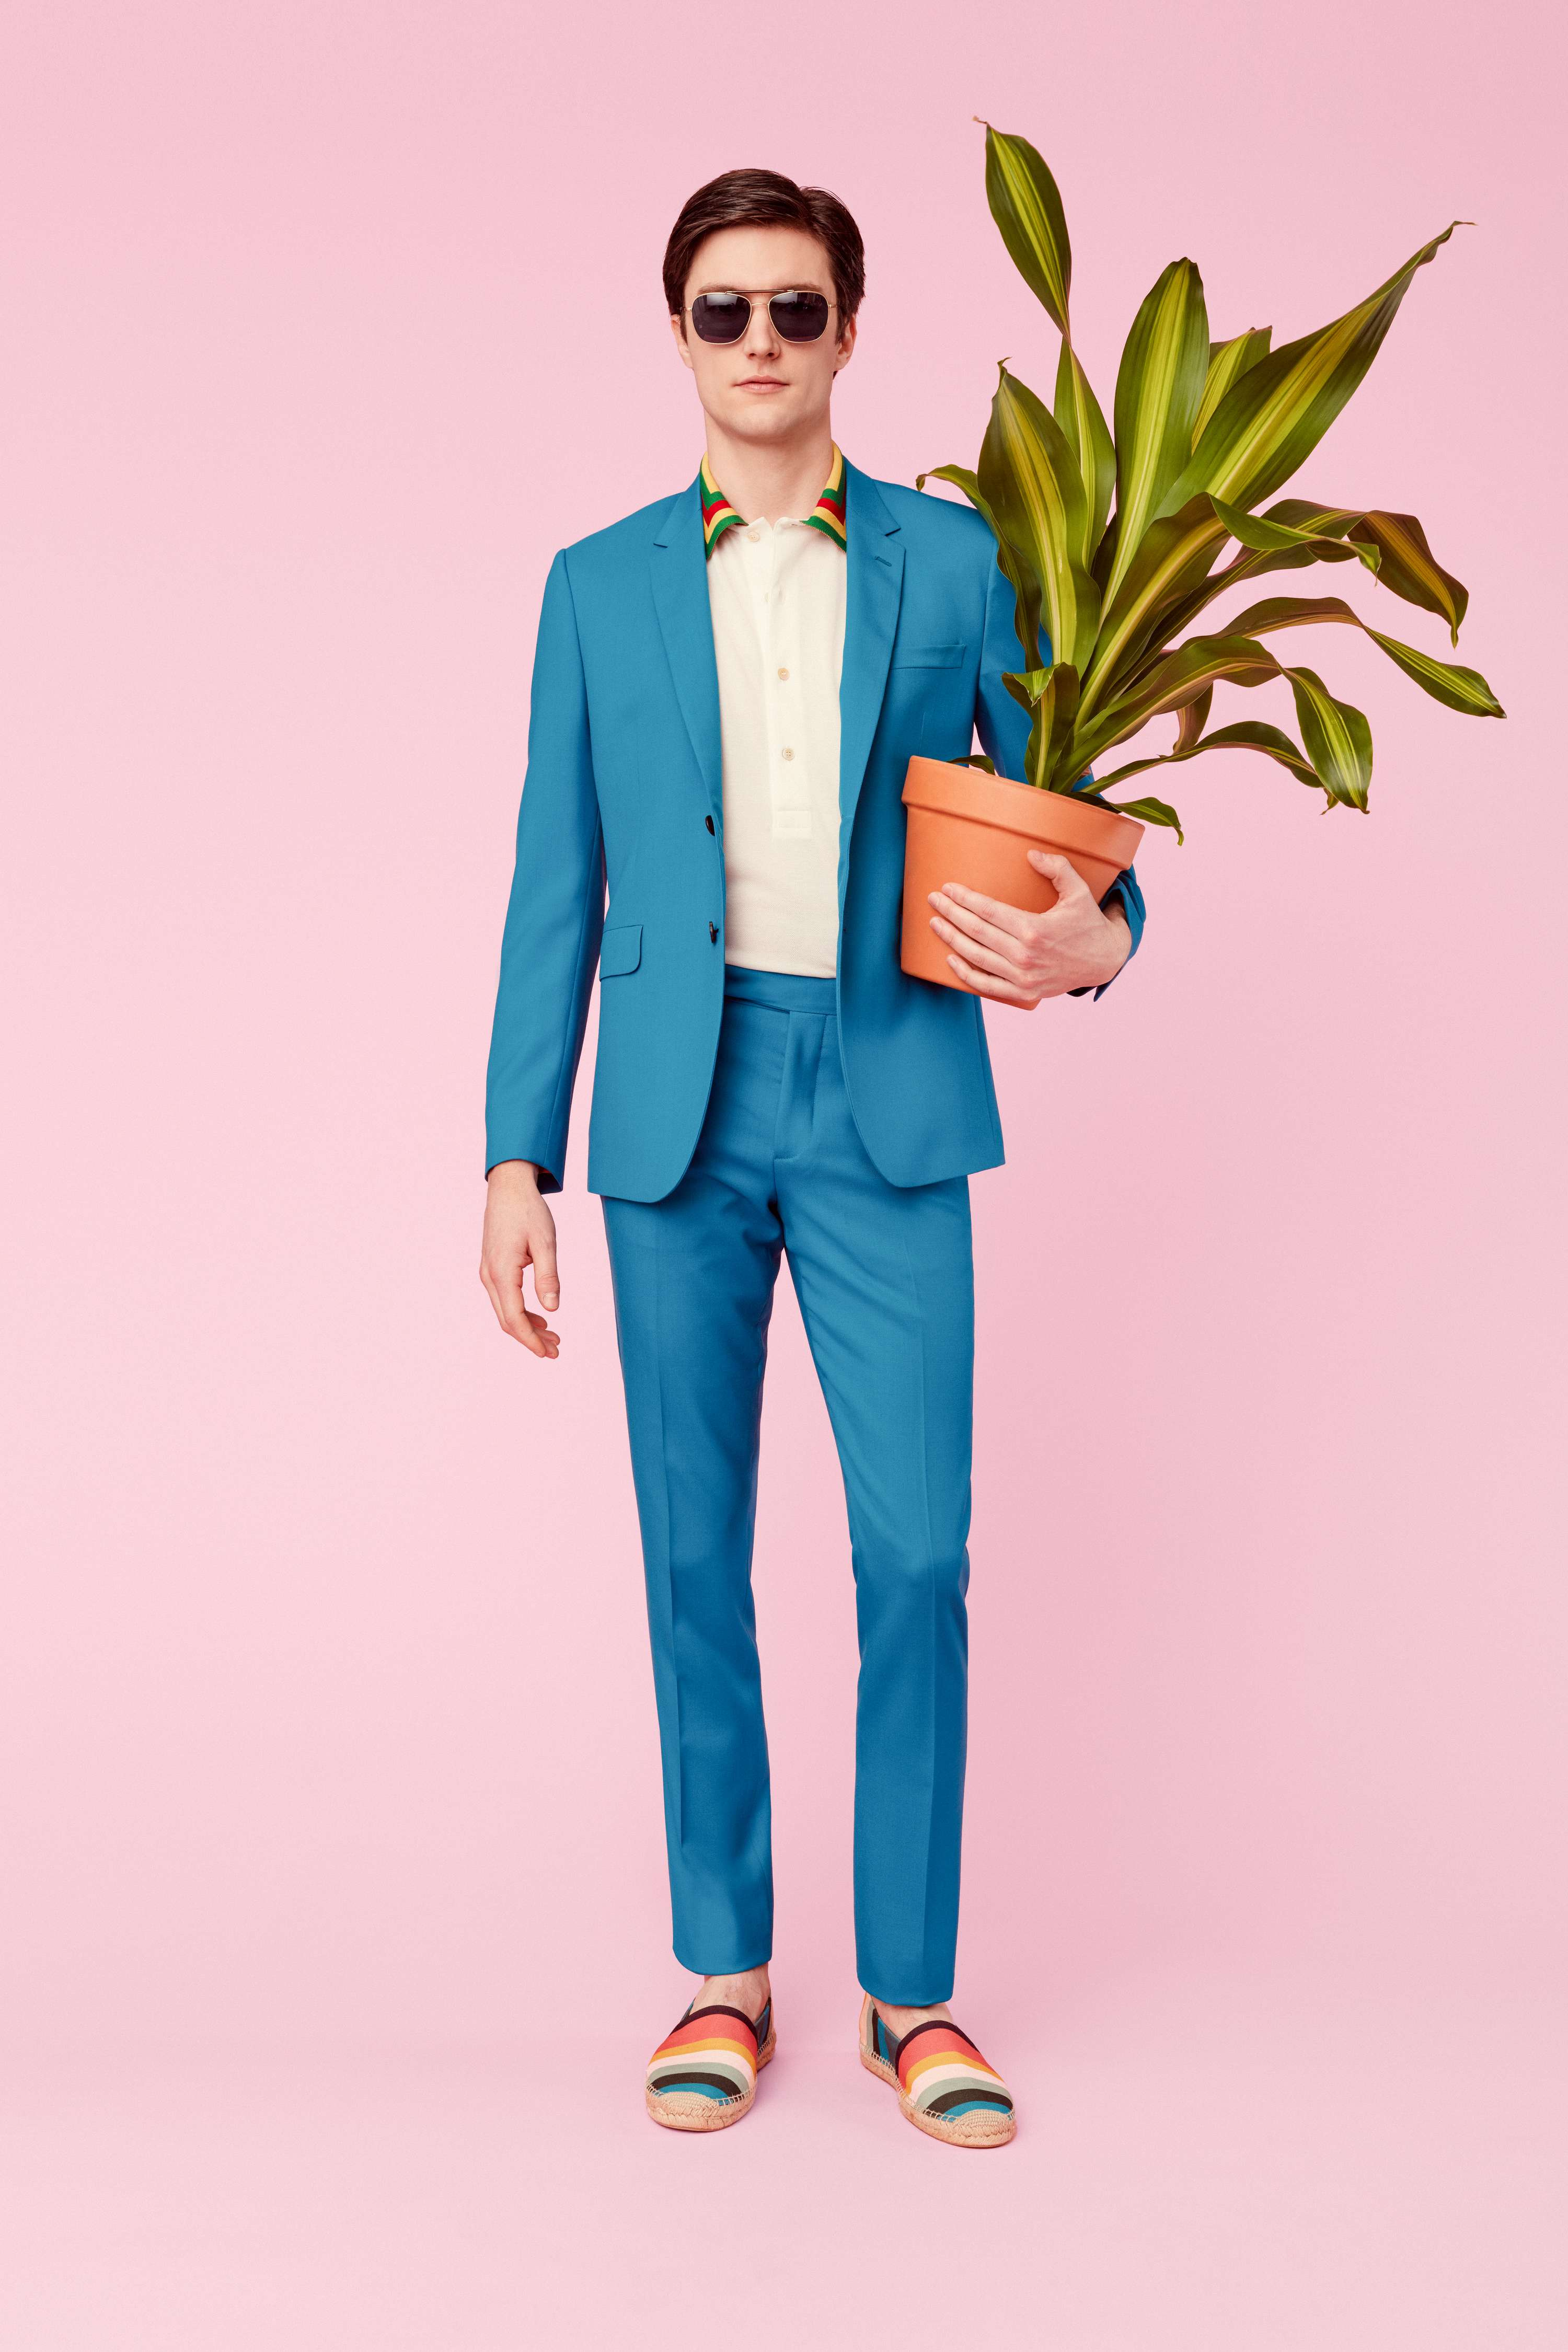 Paul Smith Wedding Suit Guide SS17 | The Dots